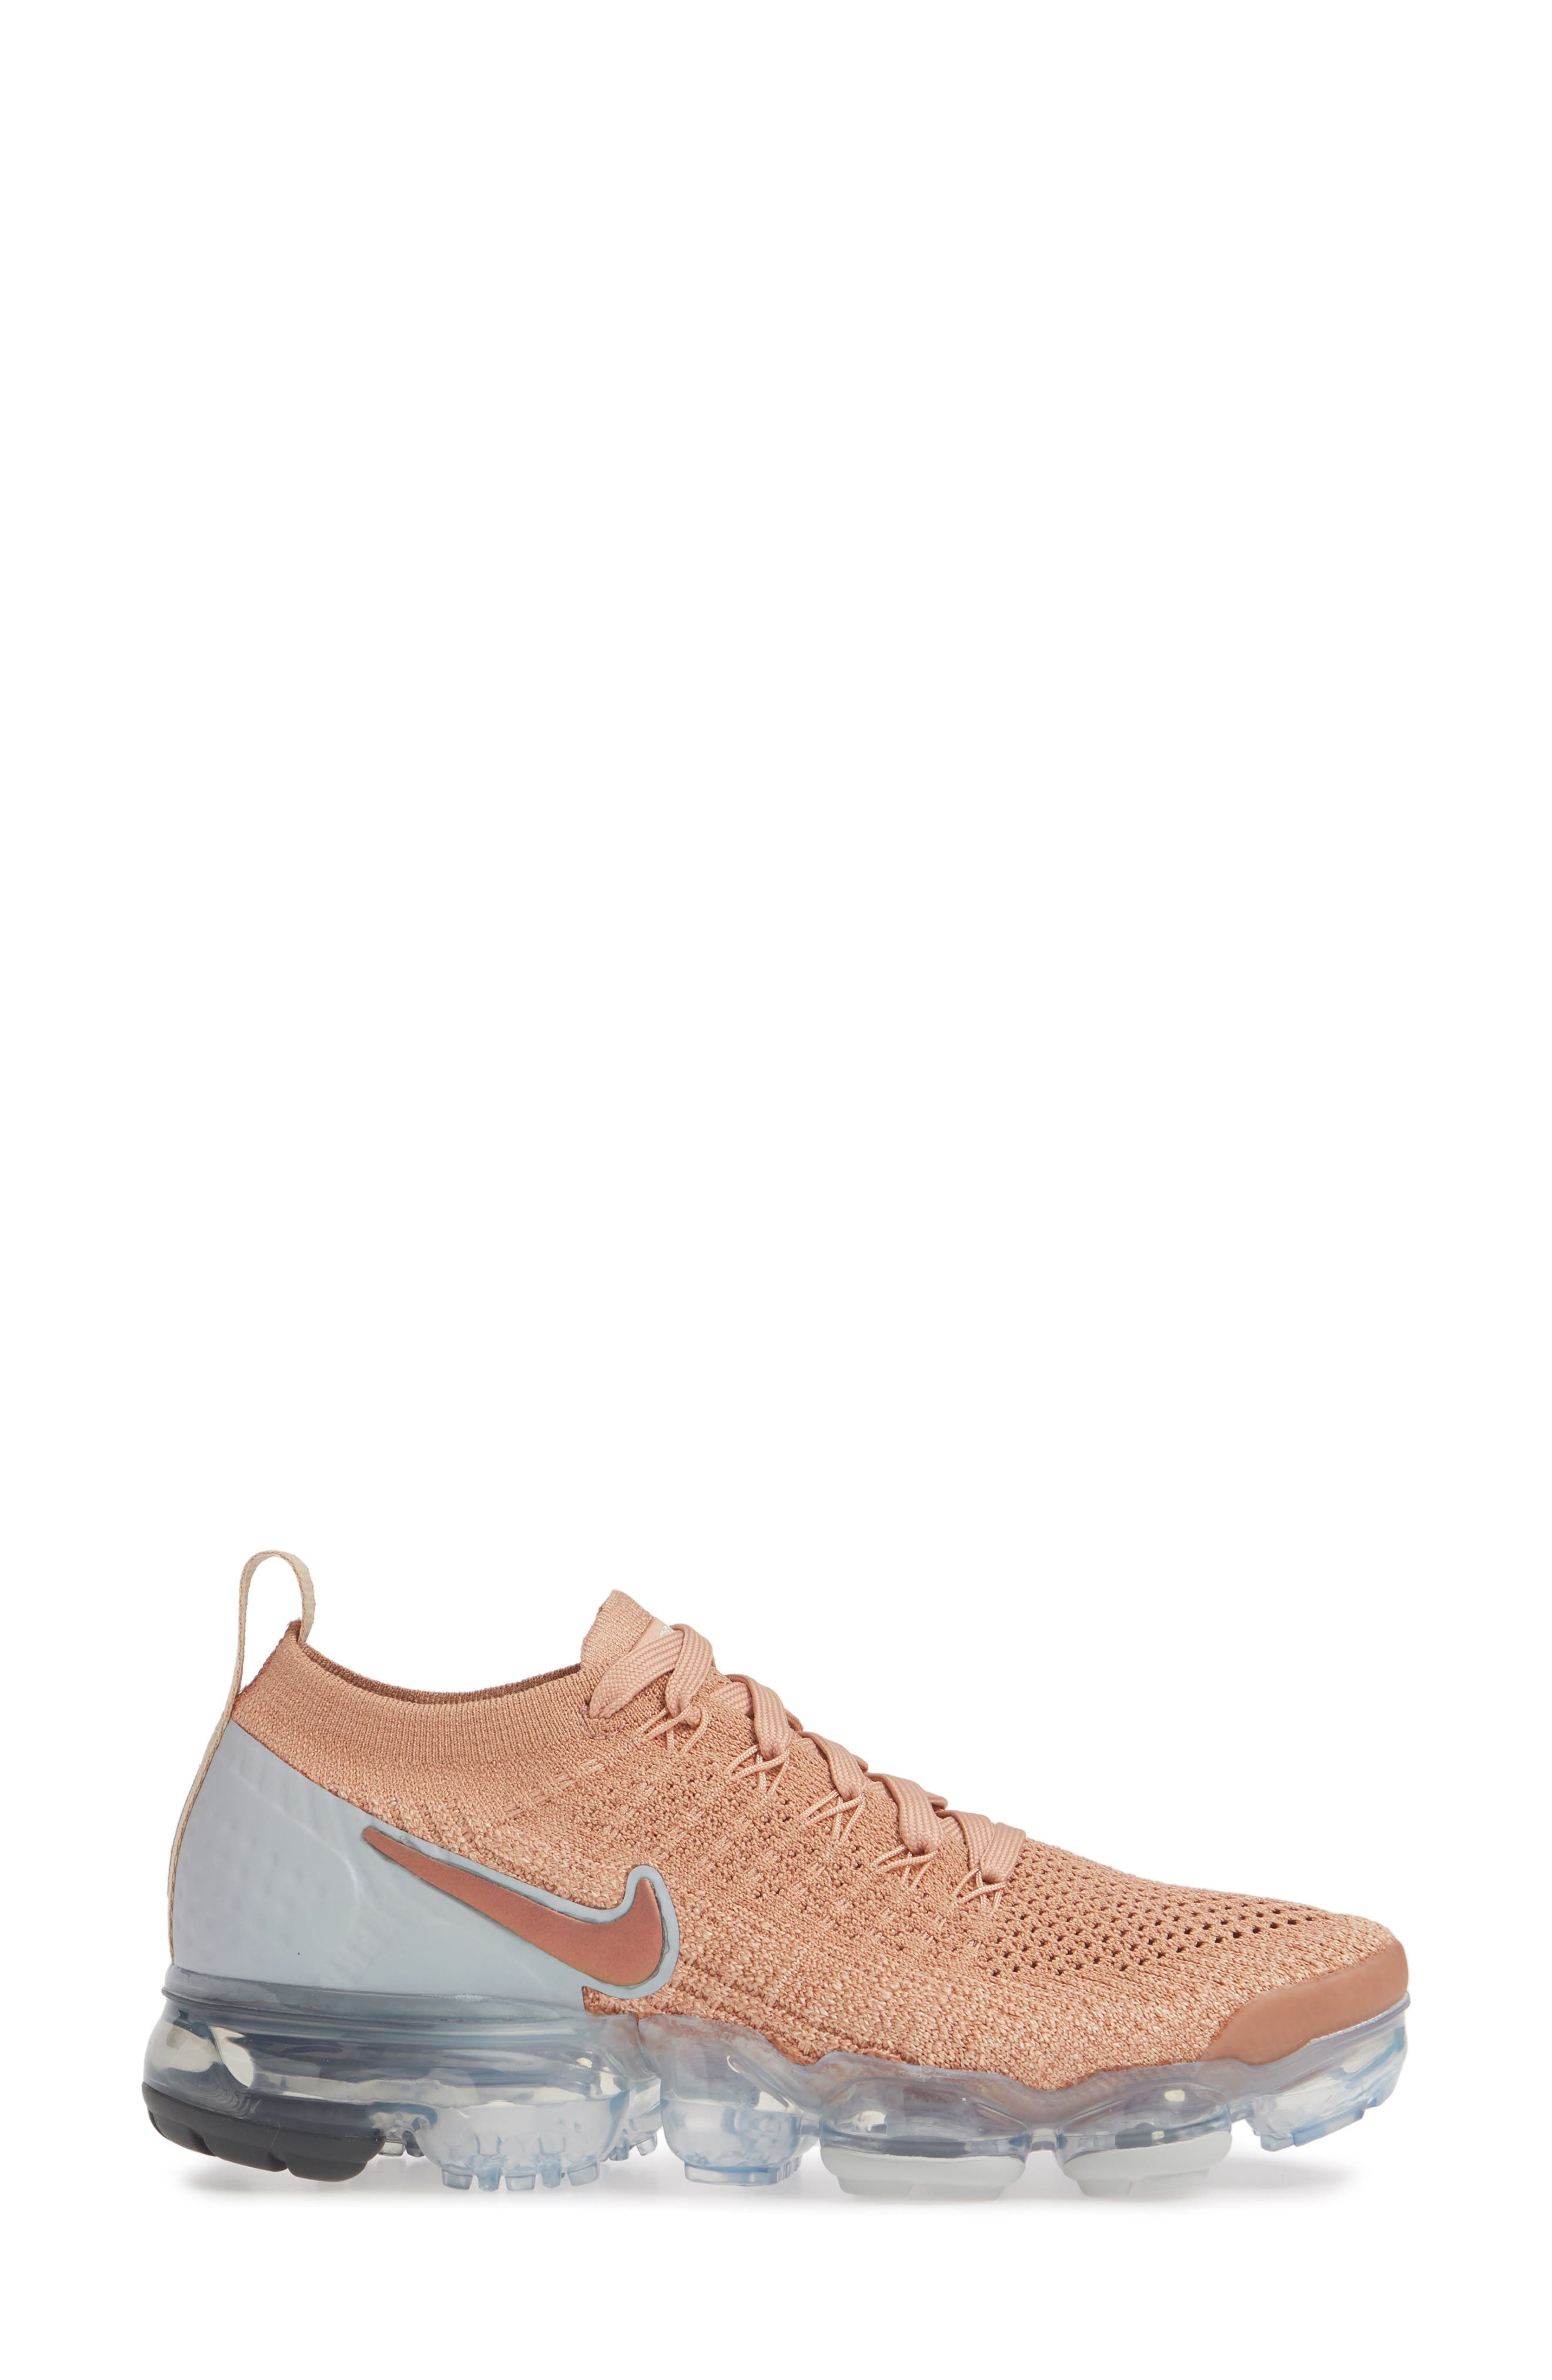 NIKE, Air VaporMax Flyknit 2 Running Shoe, Alternate thumbnail 3, color, ROSE GOLD/ BIO BEIGE